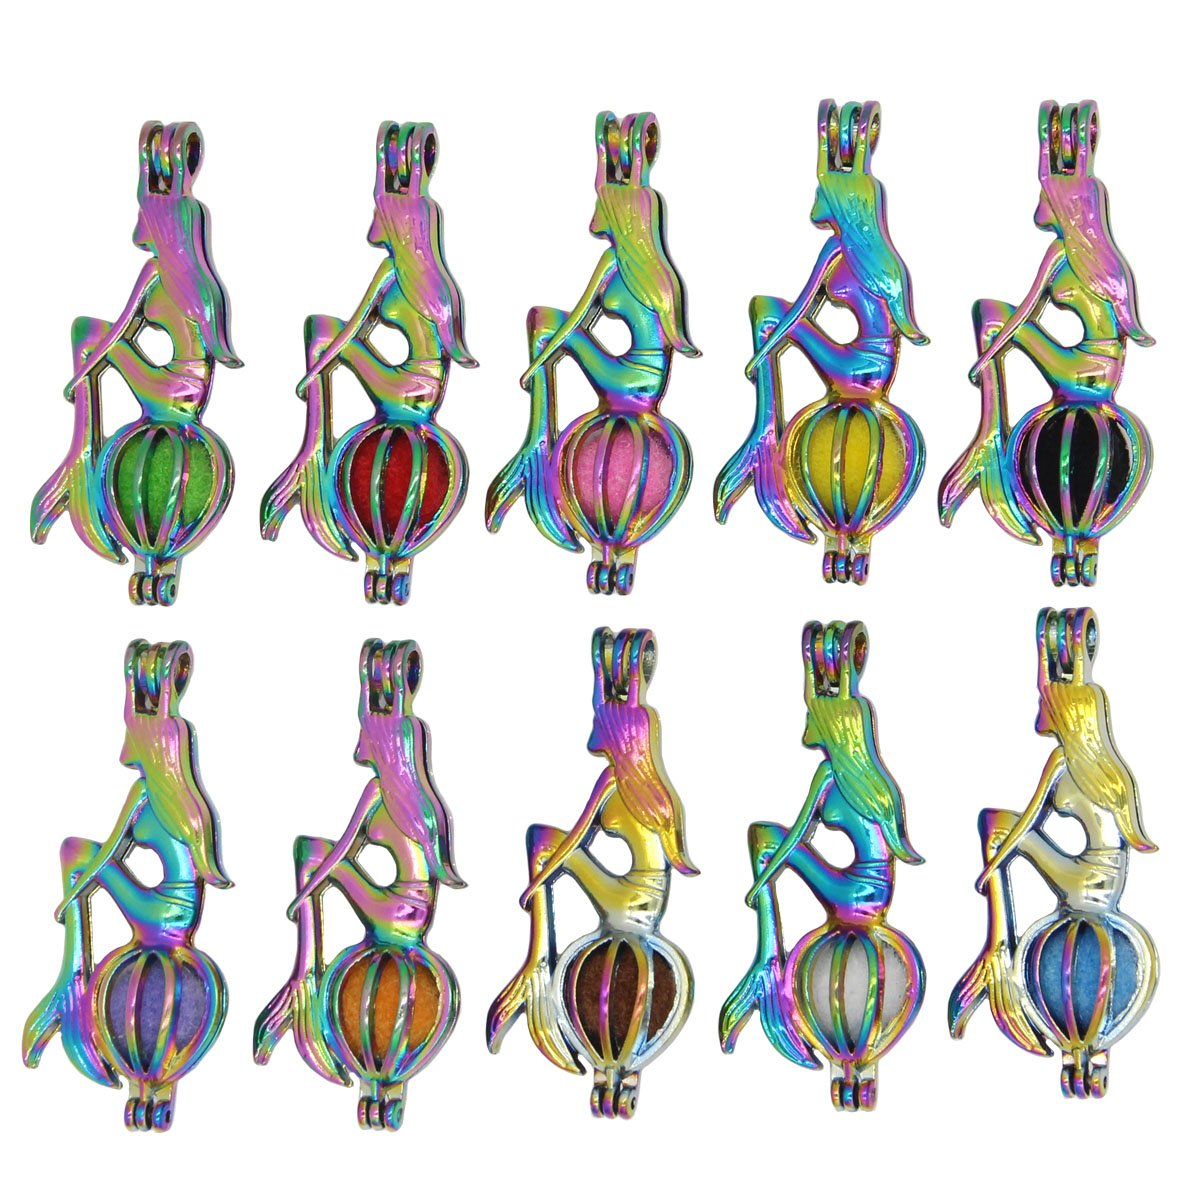 Bruin 10pcs Rainbow Mermaid Pearls Cages Locket Pendant Essential Oils Diffuser Necklace Charms HX0598-4